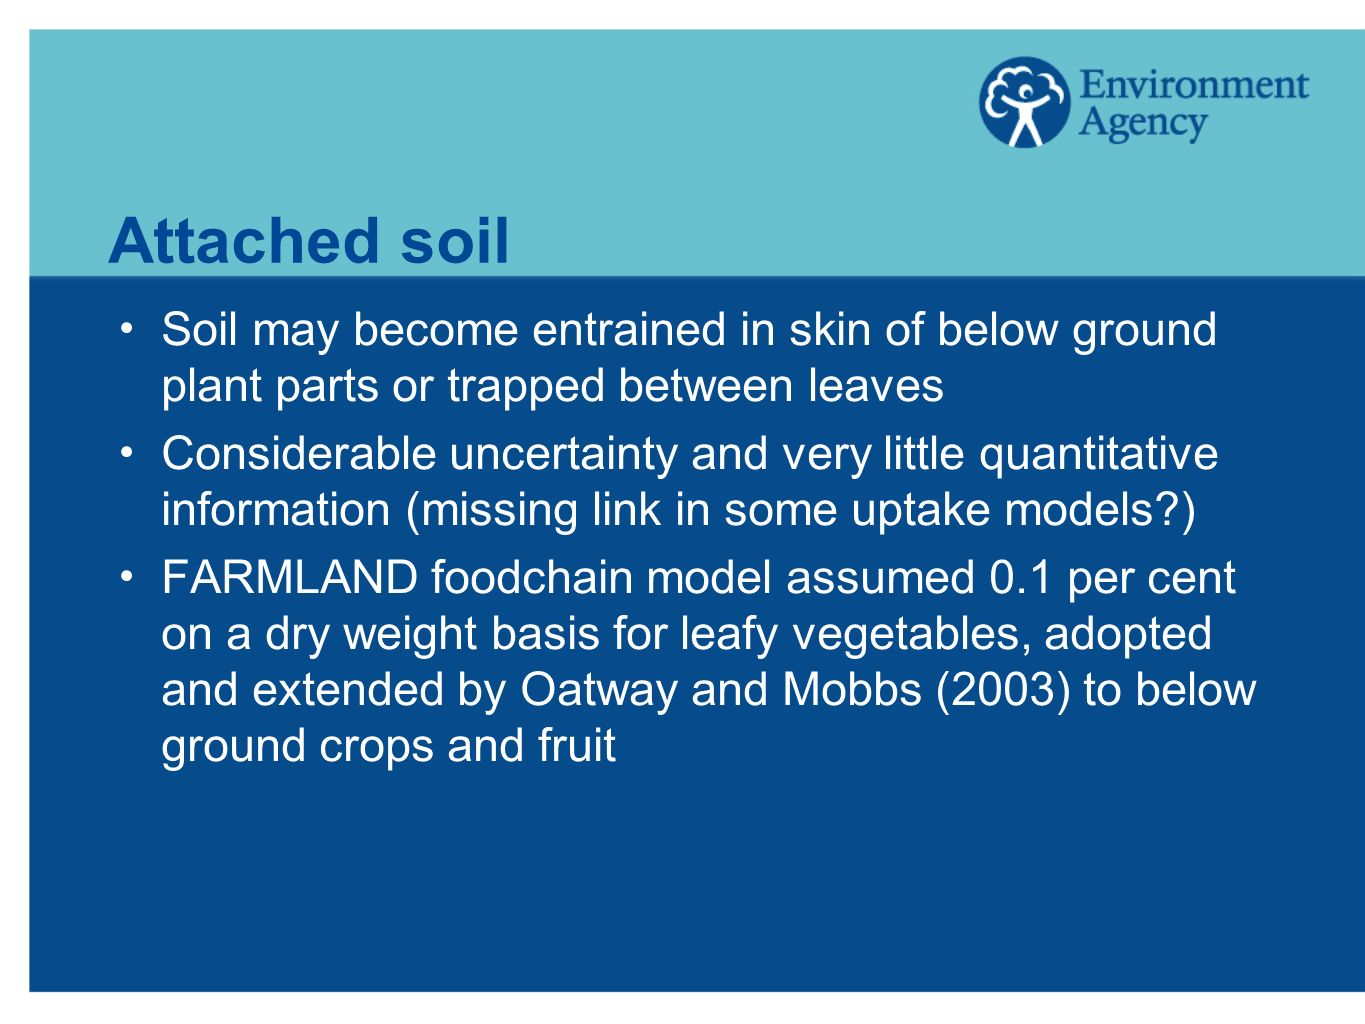 Attached soil Soil may become entrained in skin of below ground plant parts or trapped between leaves.